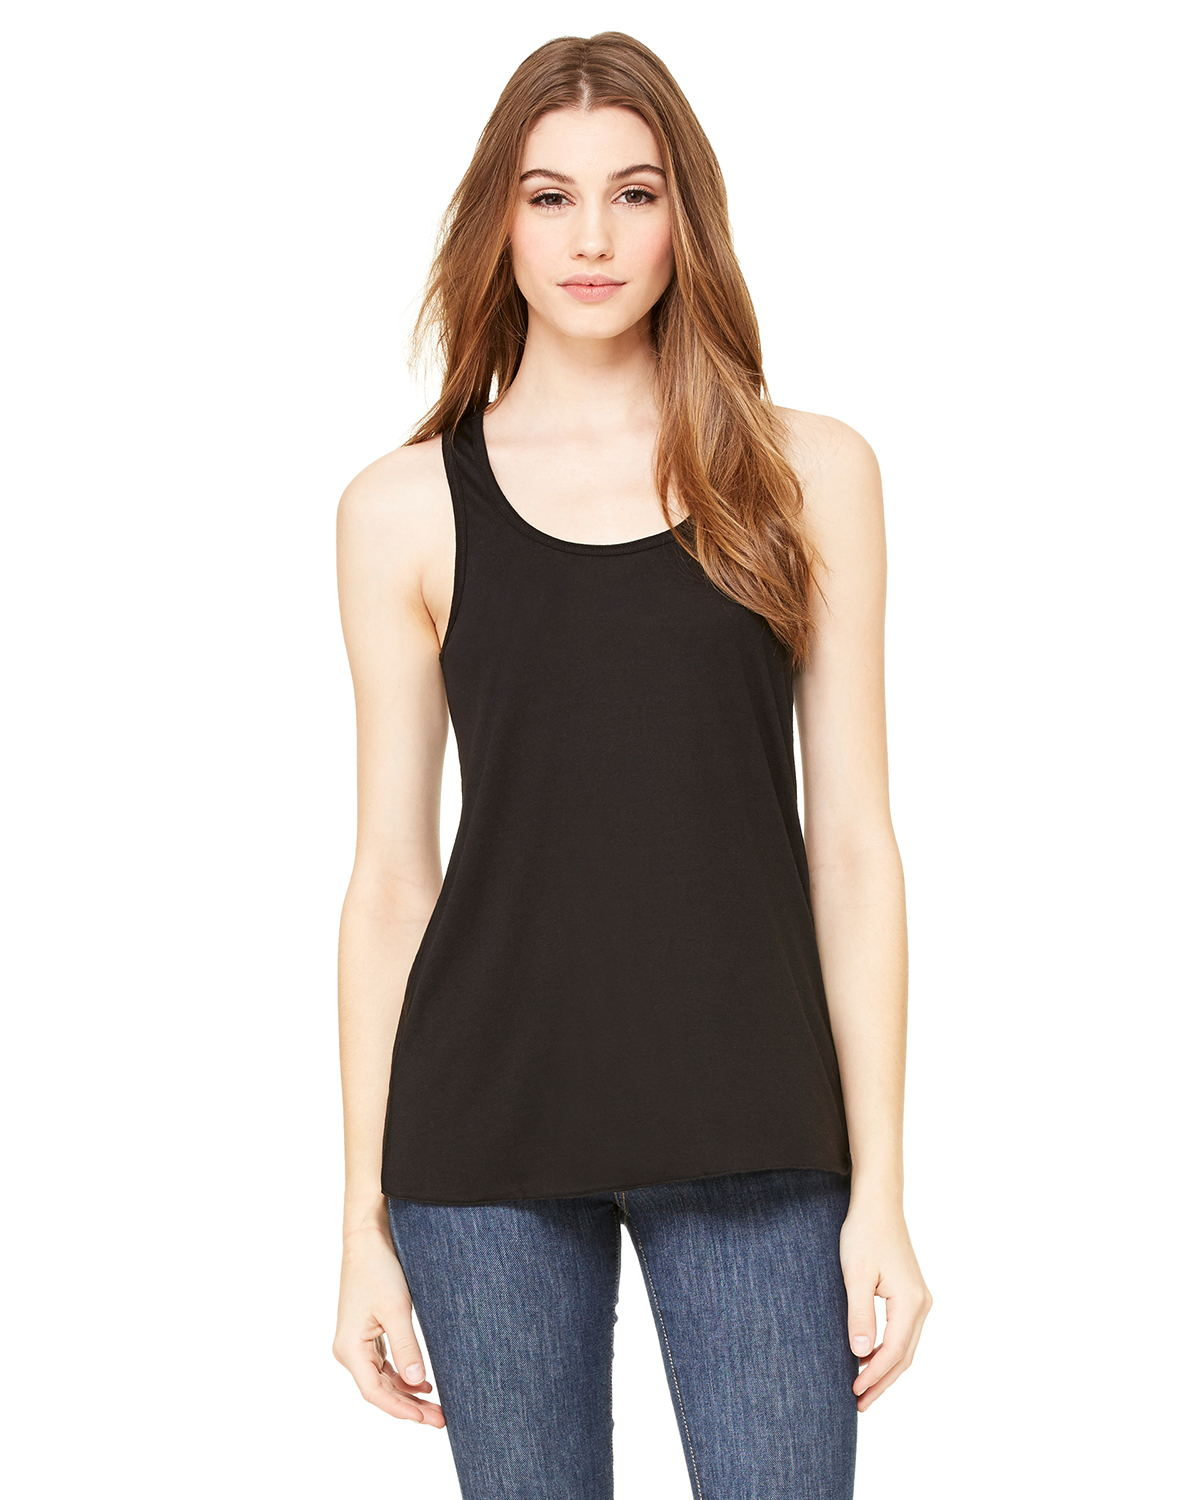 Bella B8800 Ladies 3.7 oz. Flowy Racerback Tank